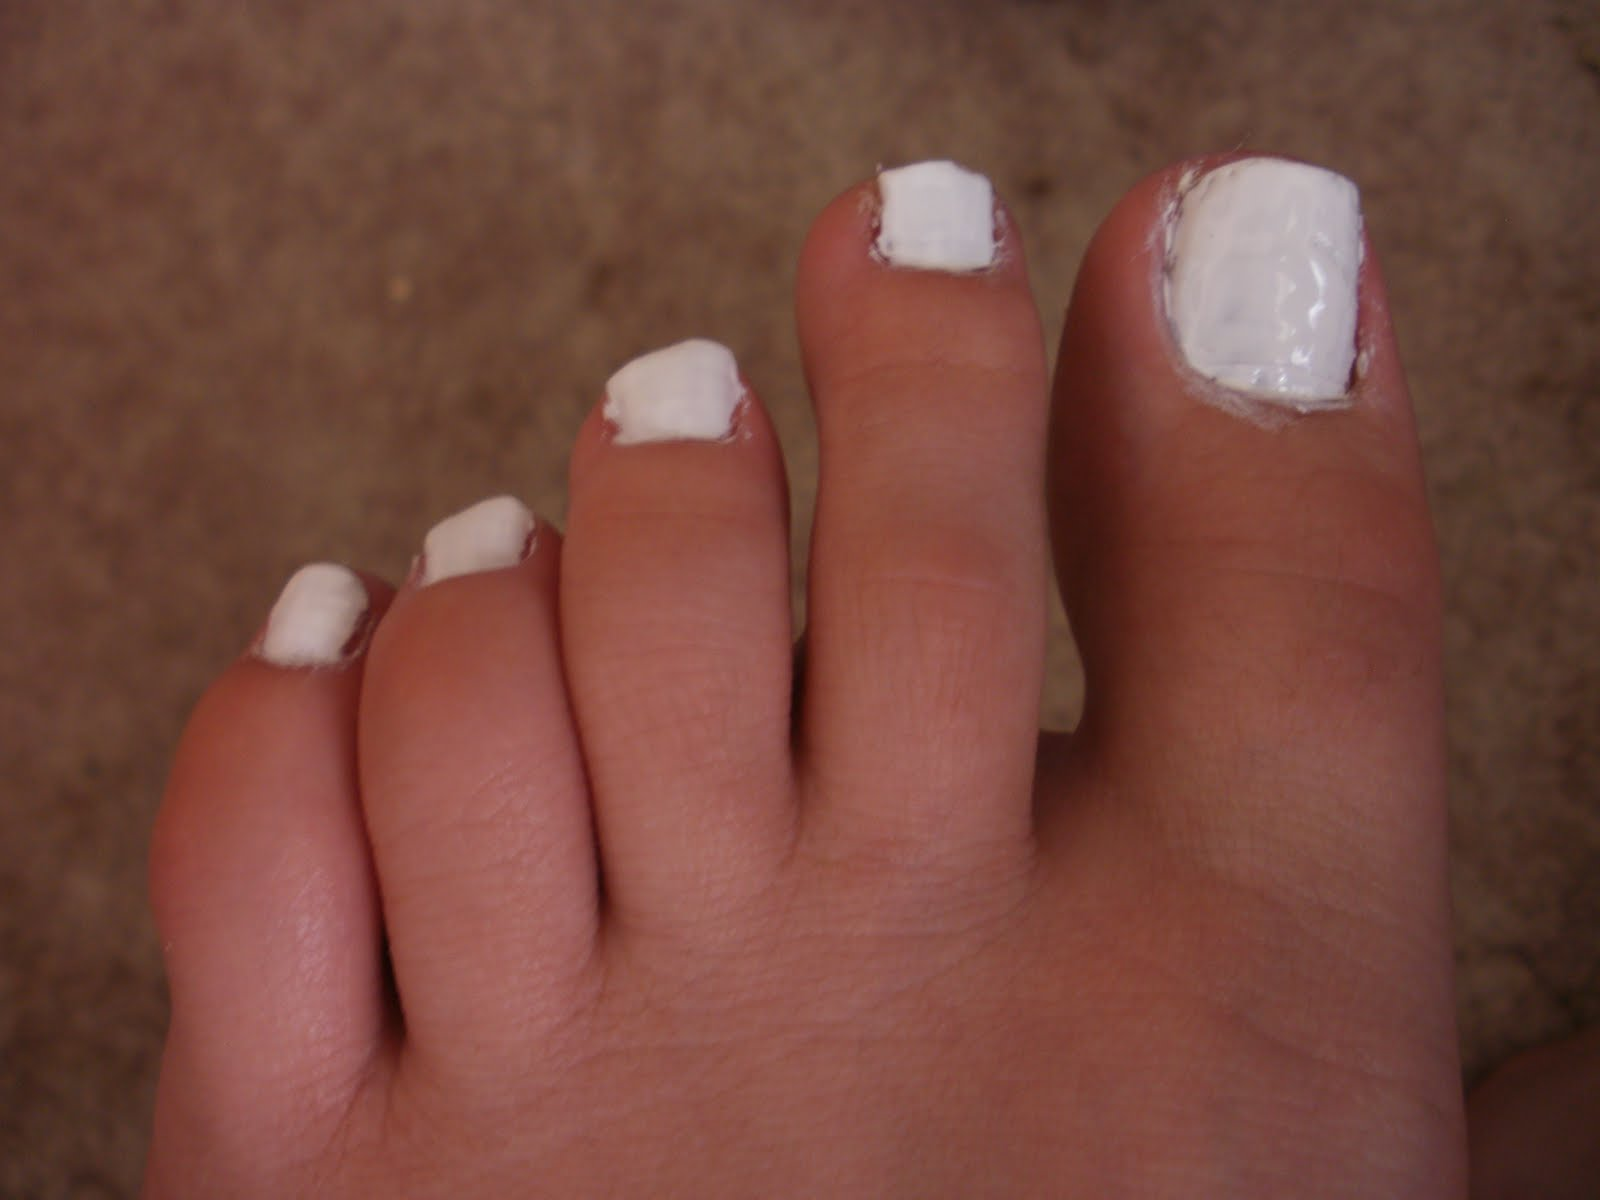 Artistry Nails: Black & White Decal Pedicure